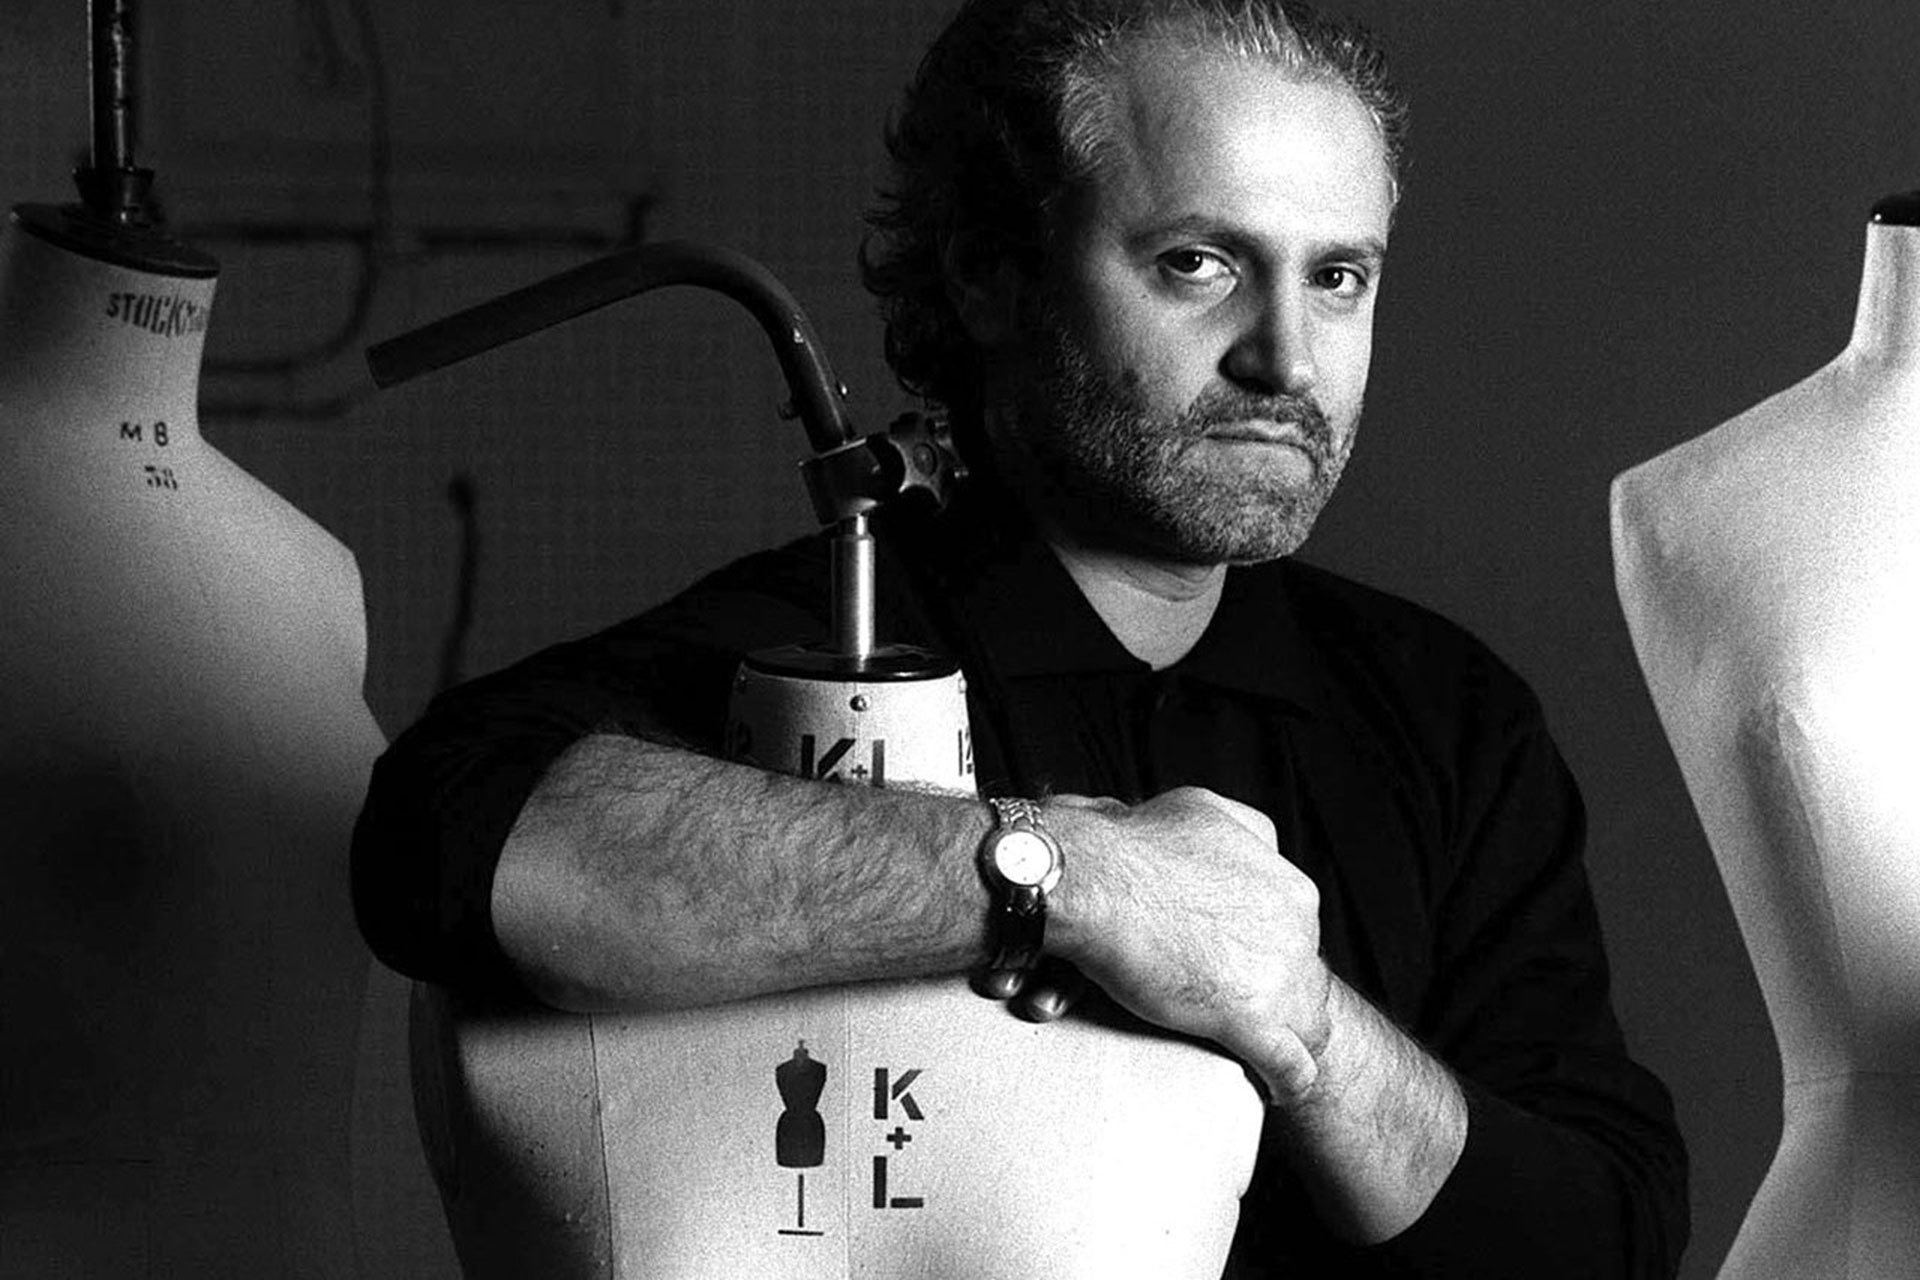 Gianni Versace: la historia un crimen fashion